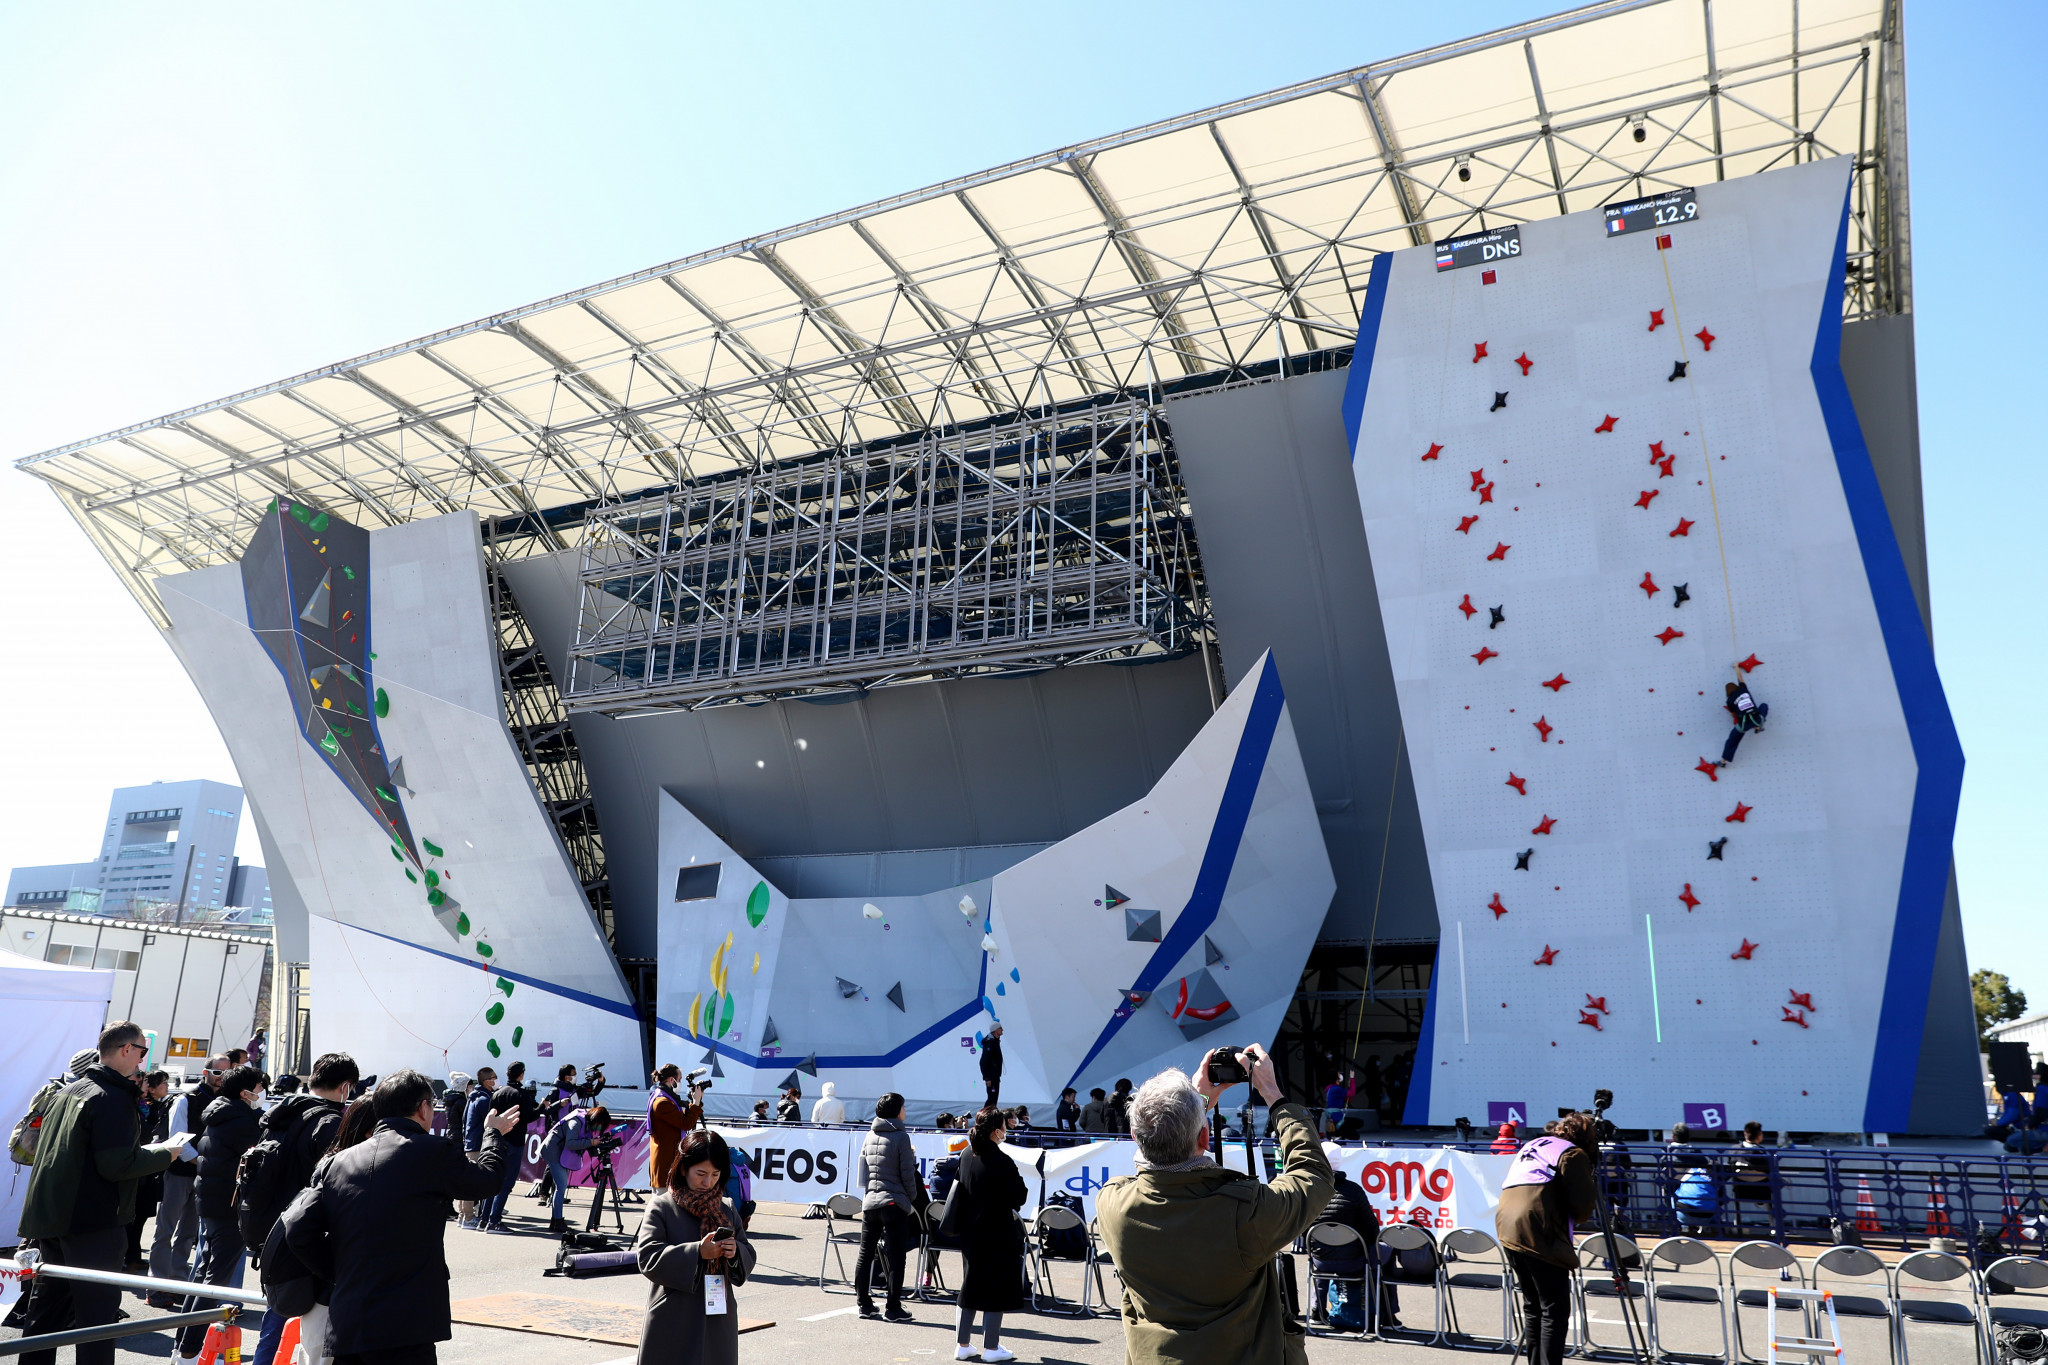 Sport climbing poised for historic Olympic debut at Tokyo 2020